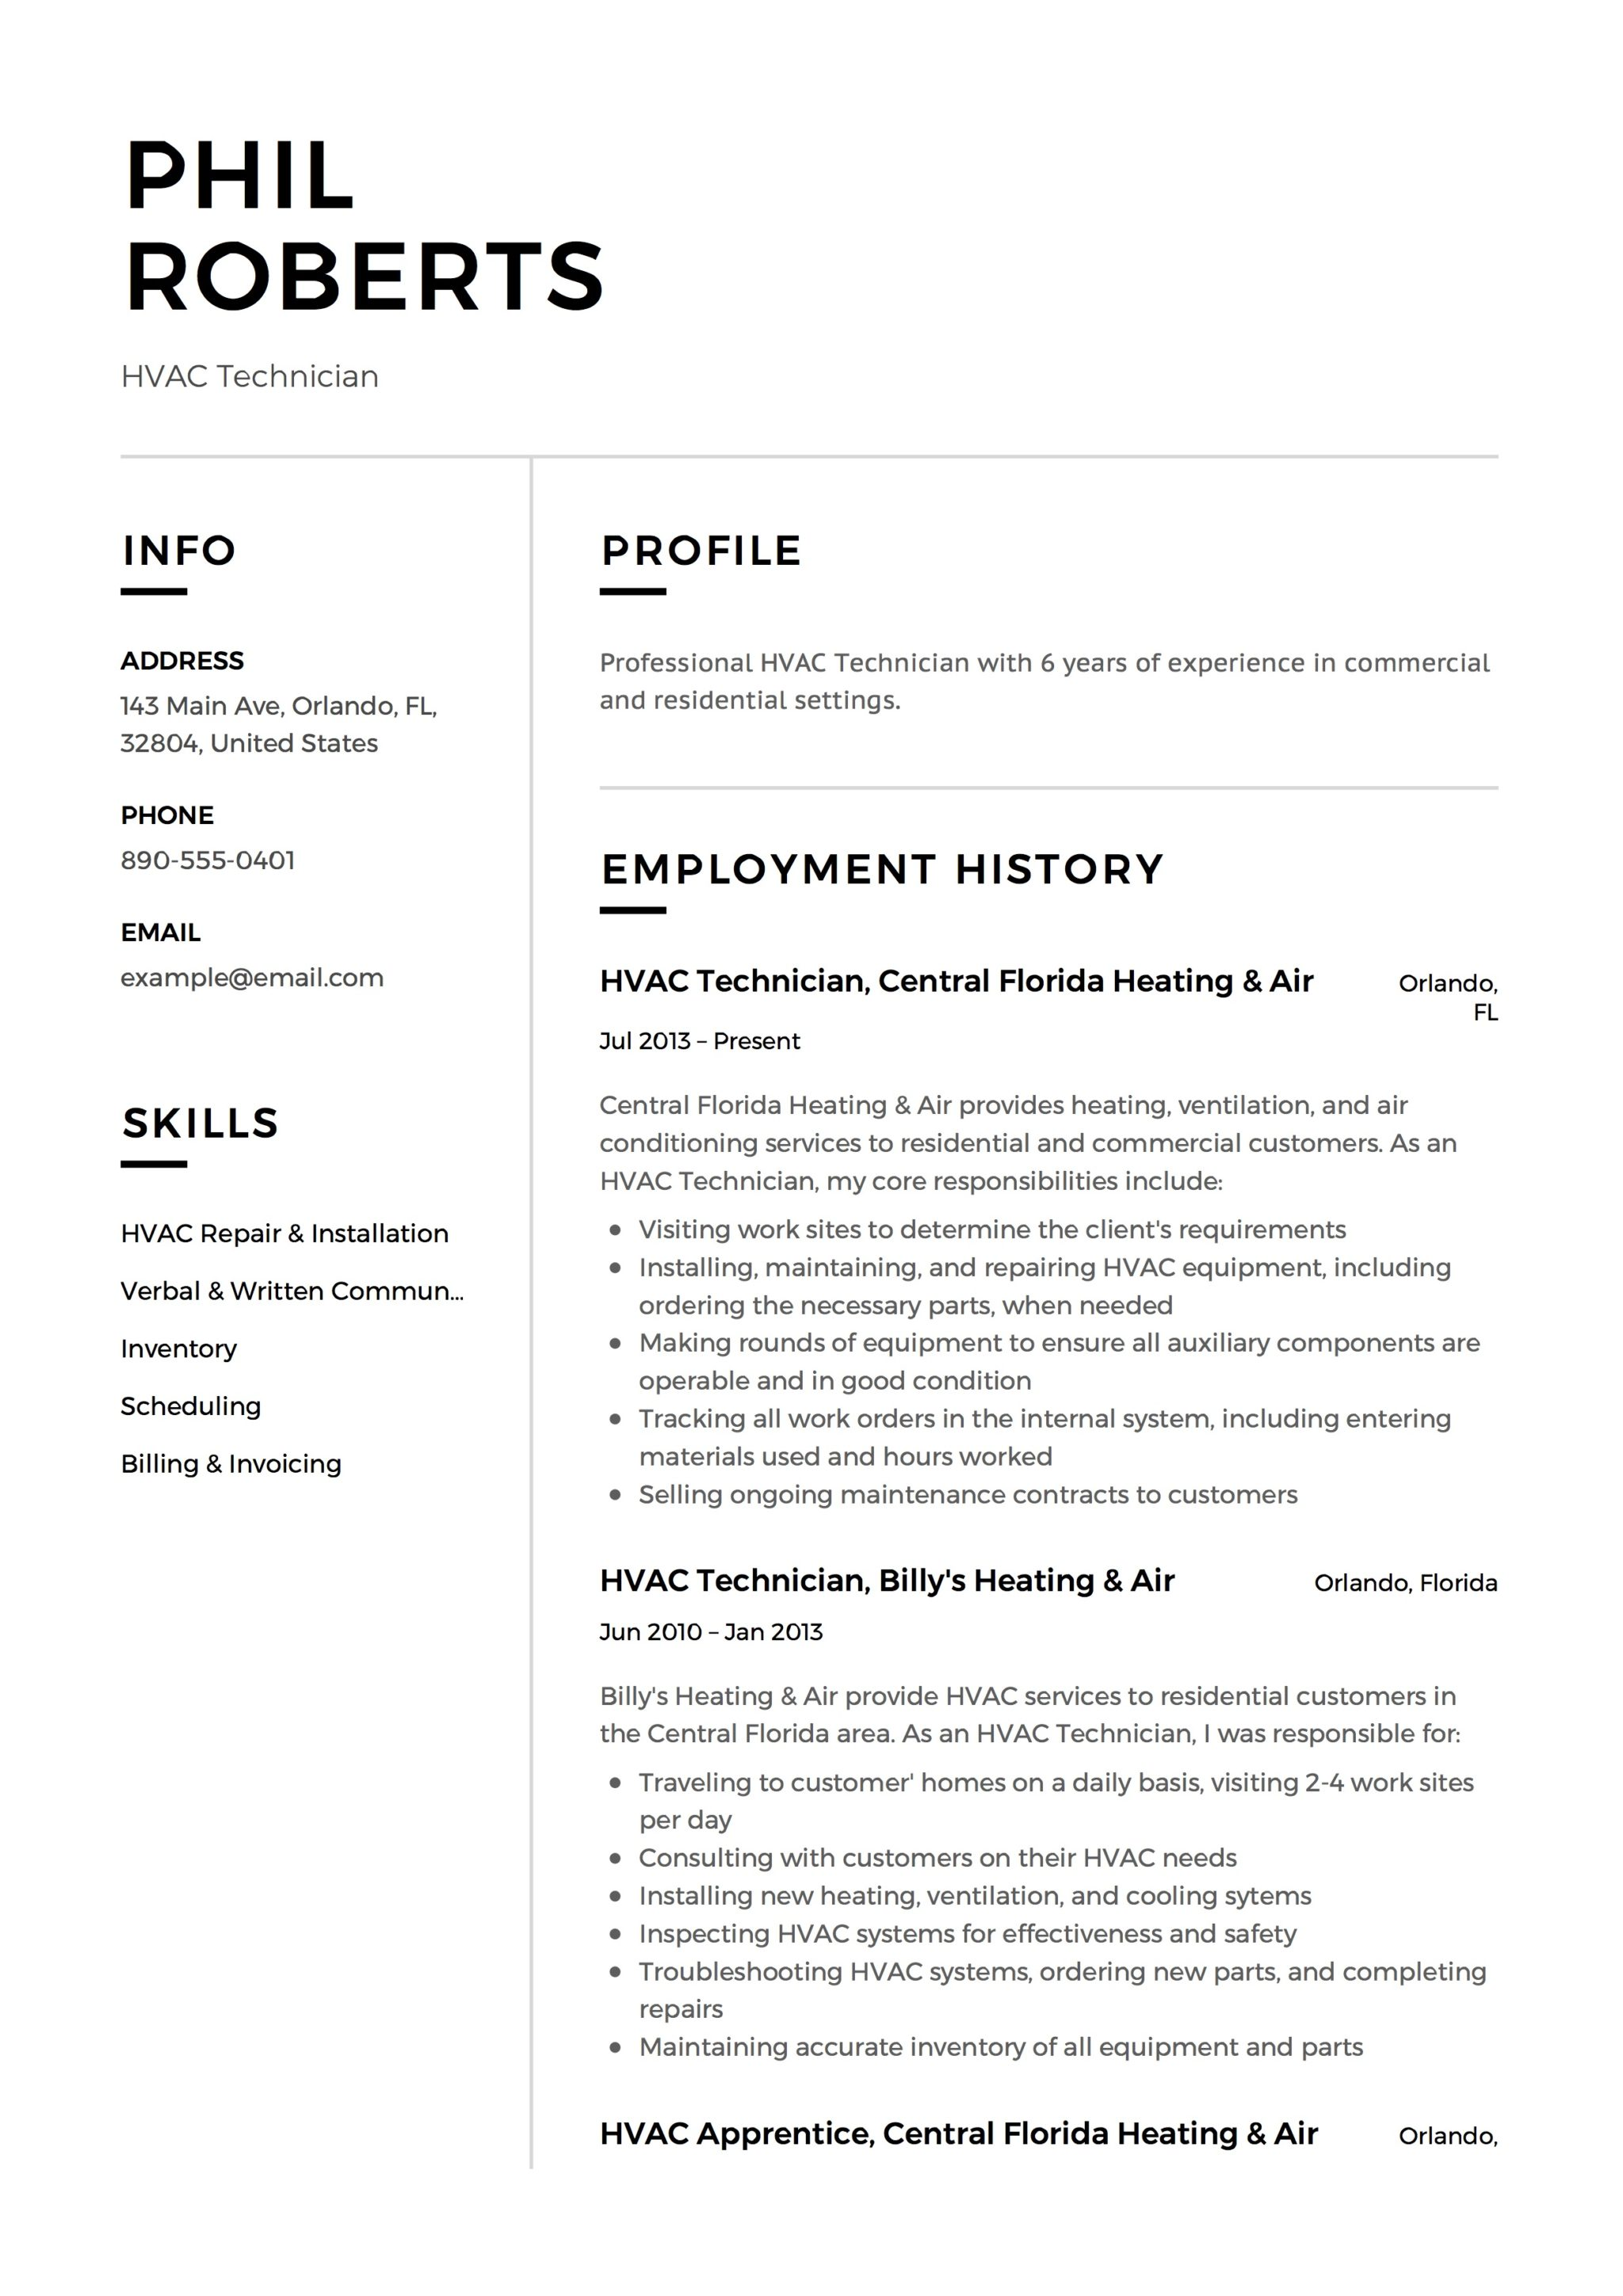 Resume builder  Resumevikingcom